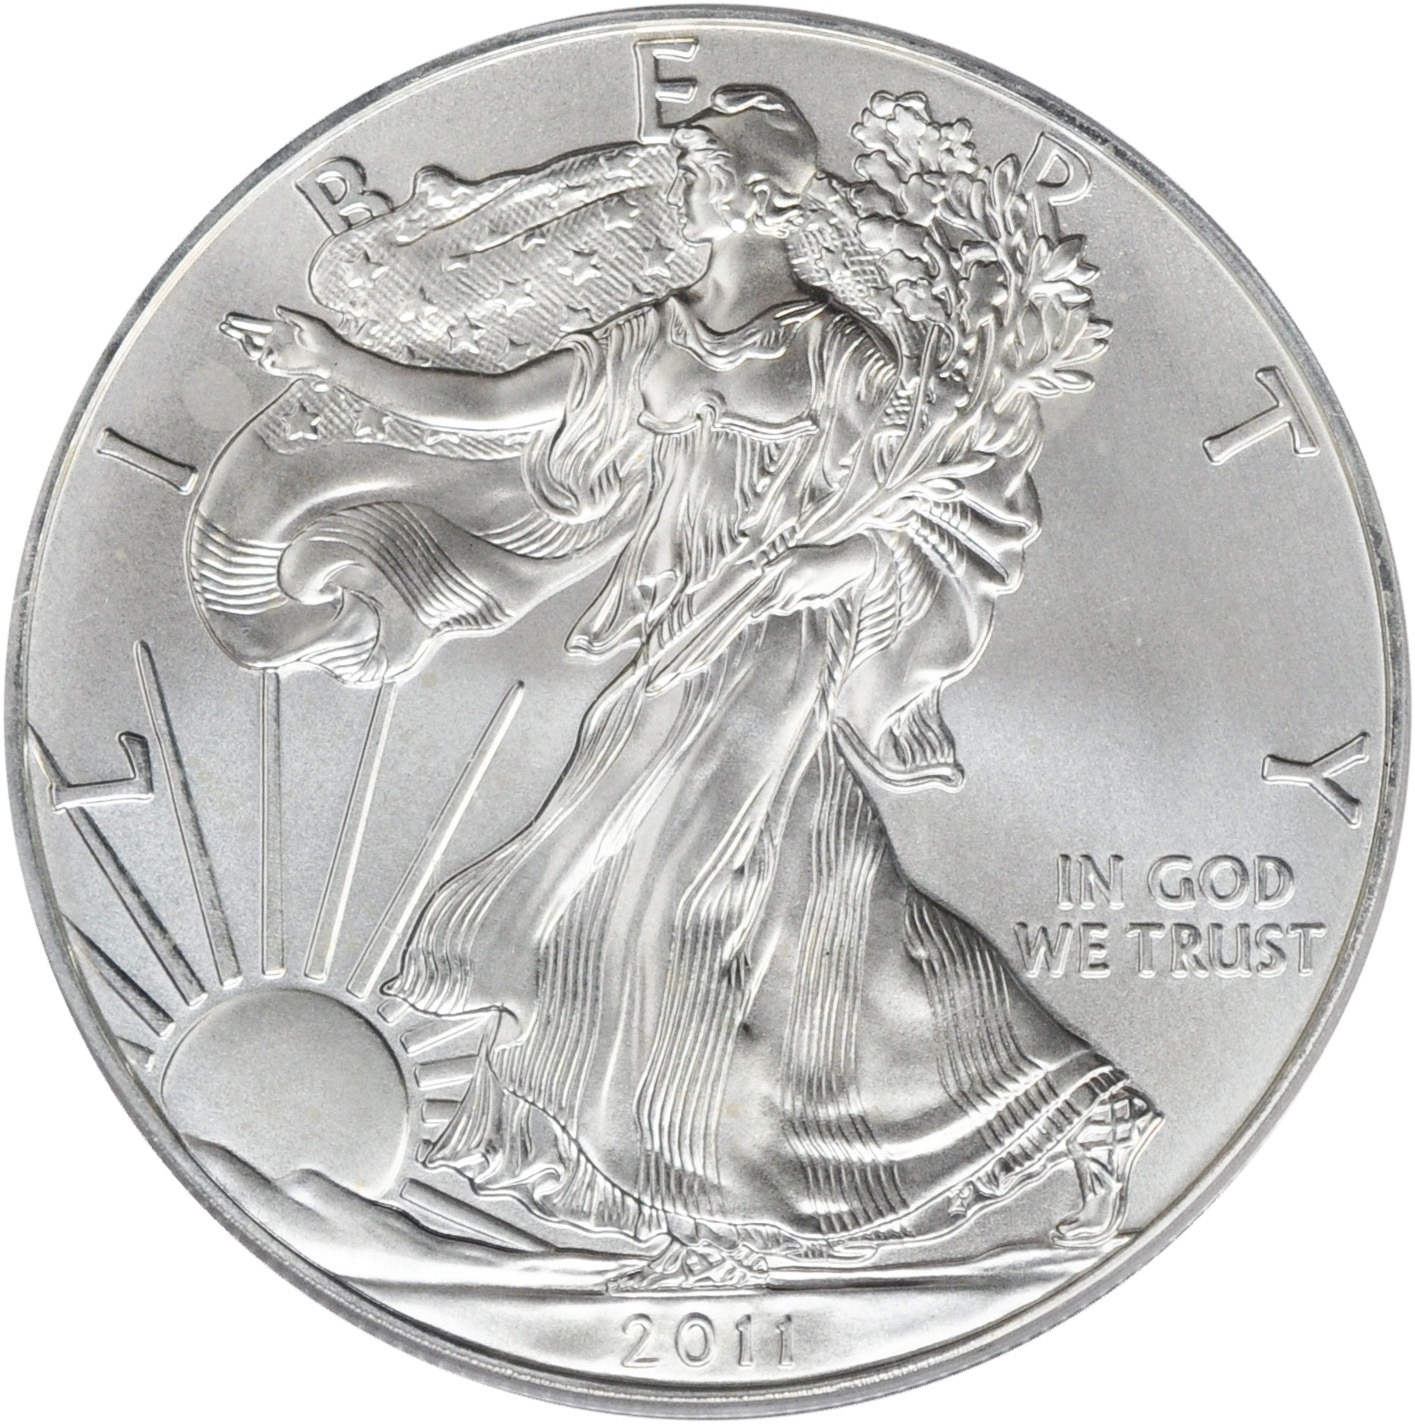 Value Of 2011 $1 Silver Coin